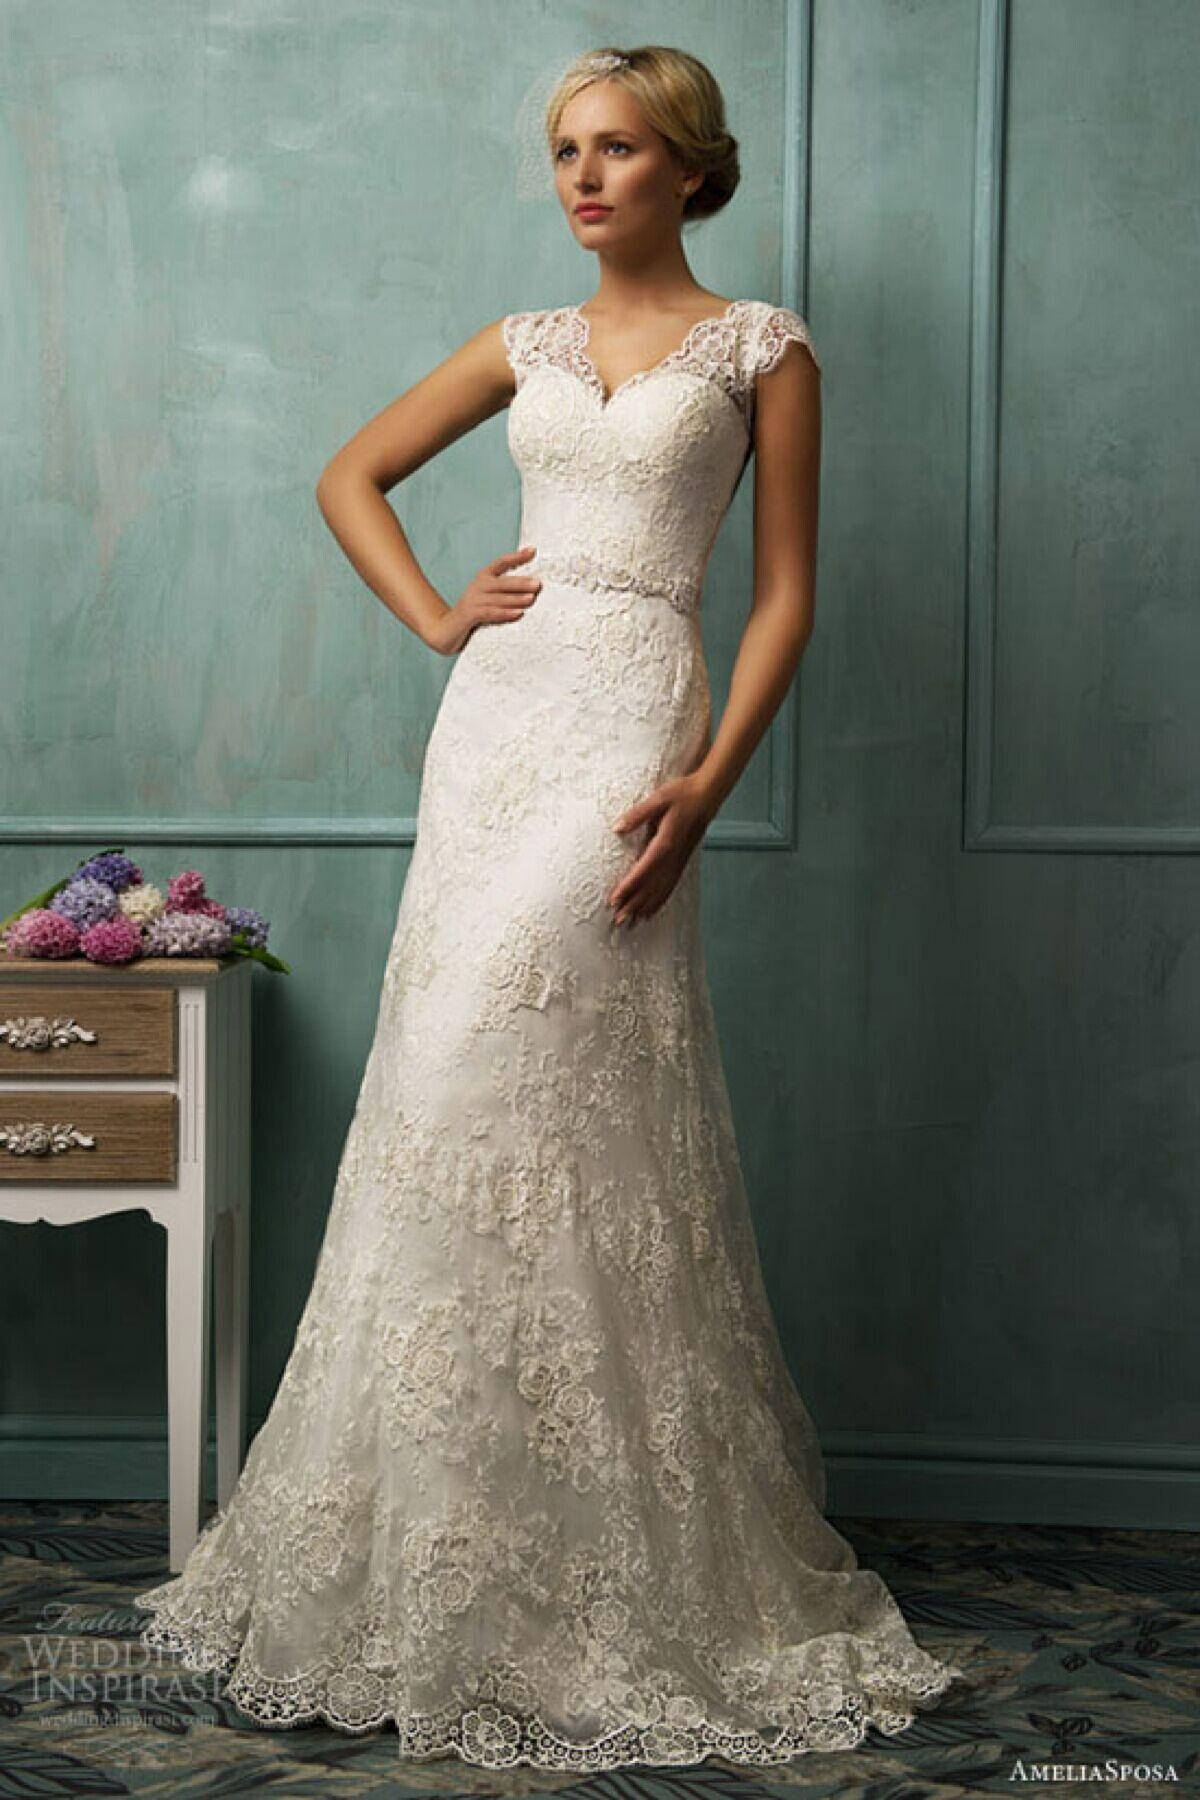 2016 Amelia Sposa Luxury Ivory Lace Wedding Dress V Cut